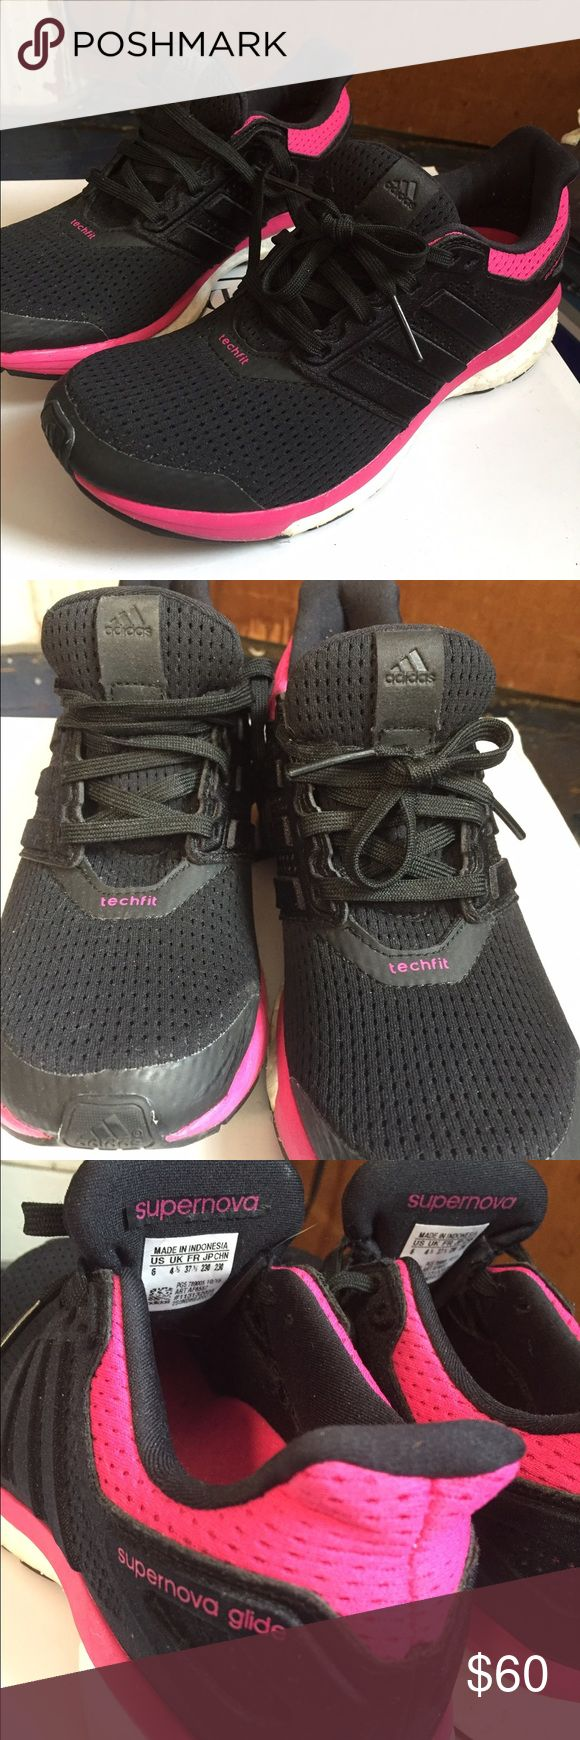 """BRAND NEW Adidas boost techfit running shoe VERY comfy and light! Black with hot pink accents. Mesh, so airy. Fits to foot. """"shoes blend a flexible, adaptive techfit® upper with the plush, energy-filled ride of boost™. The result is a lightweight, neutral running shoe that will invigorate runners of every level, at any distance.""""- from adidas site Adidas Shoes Sneakers"""